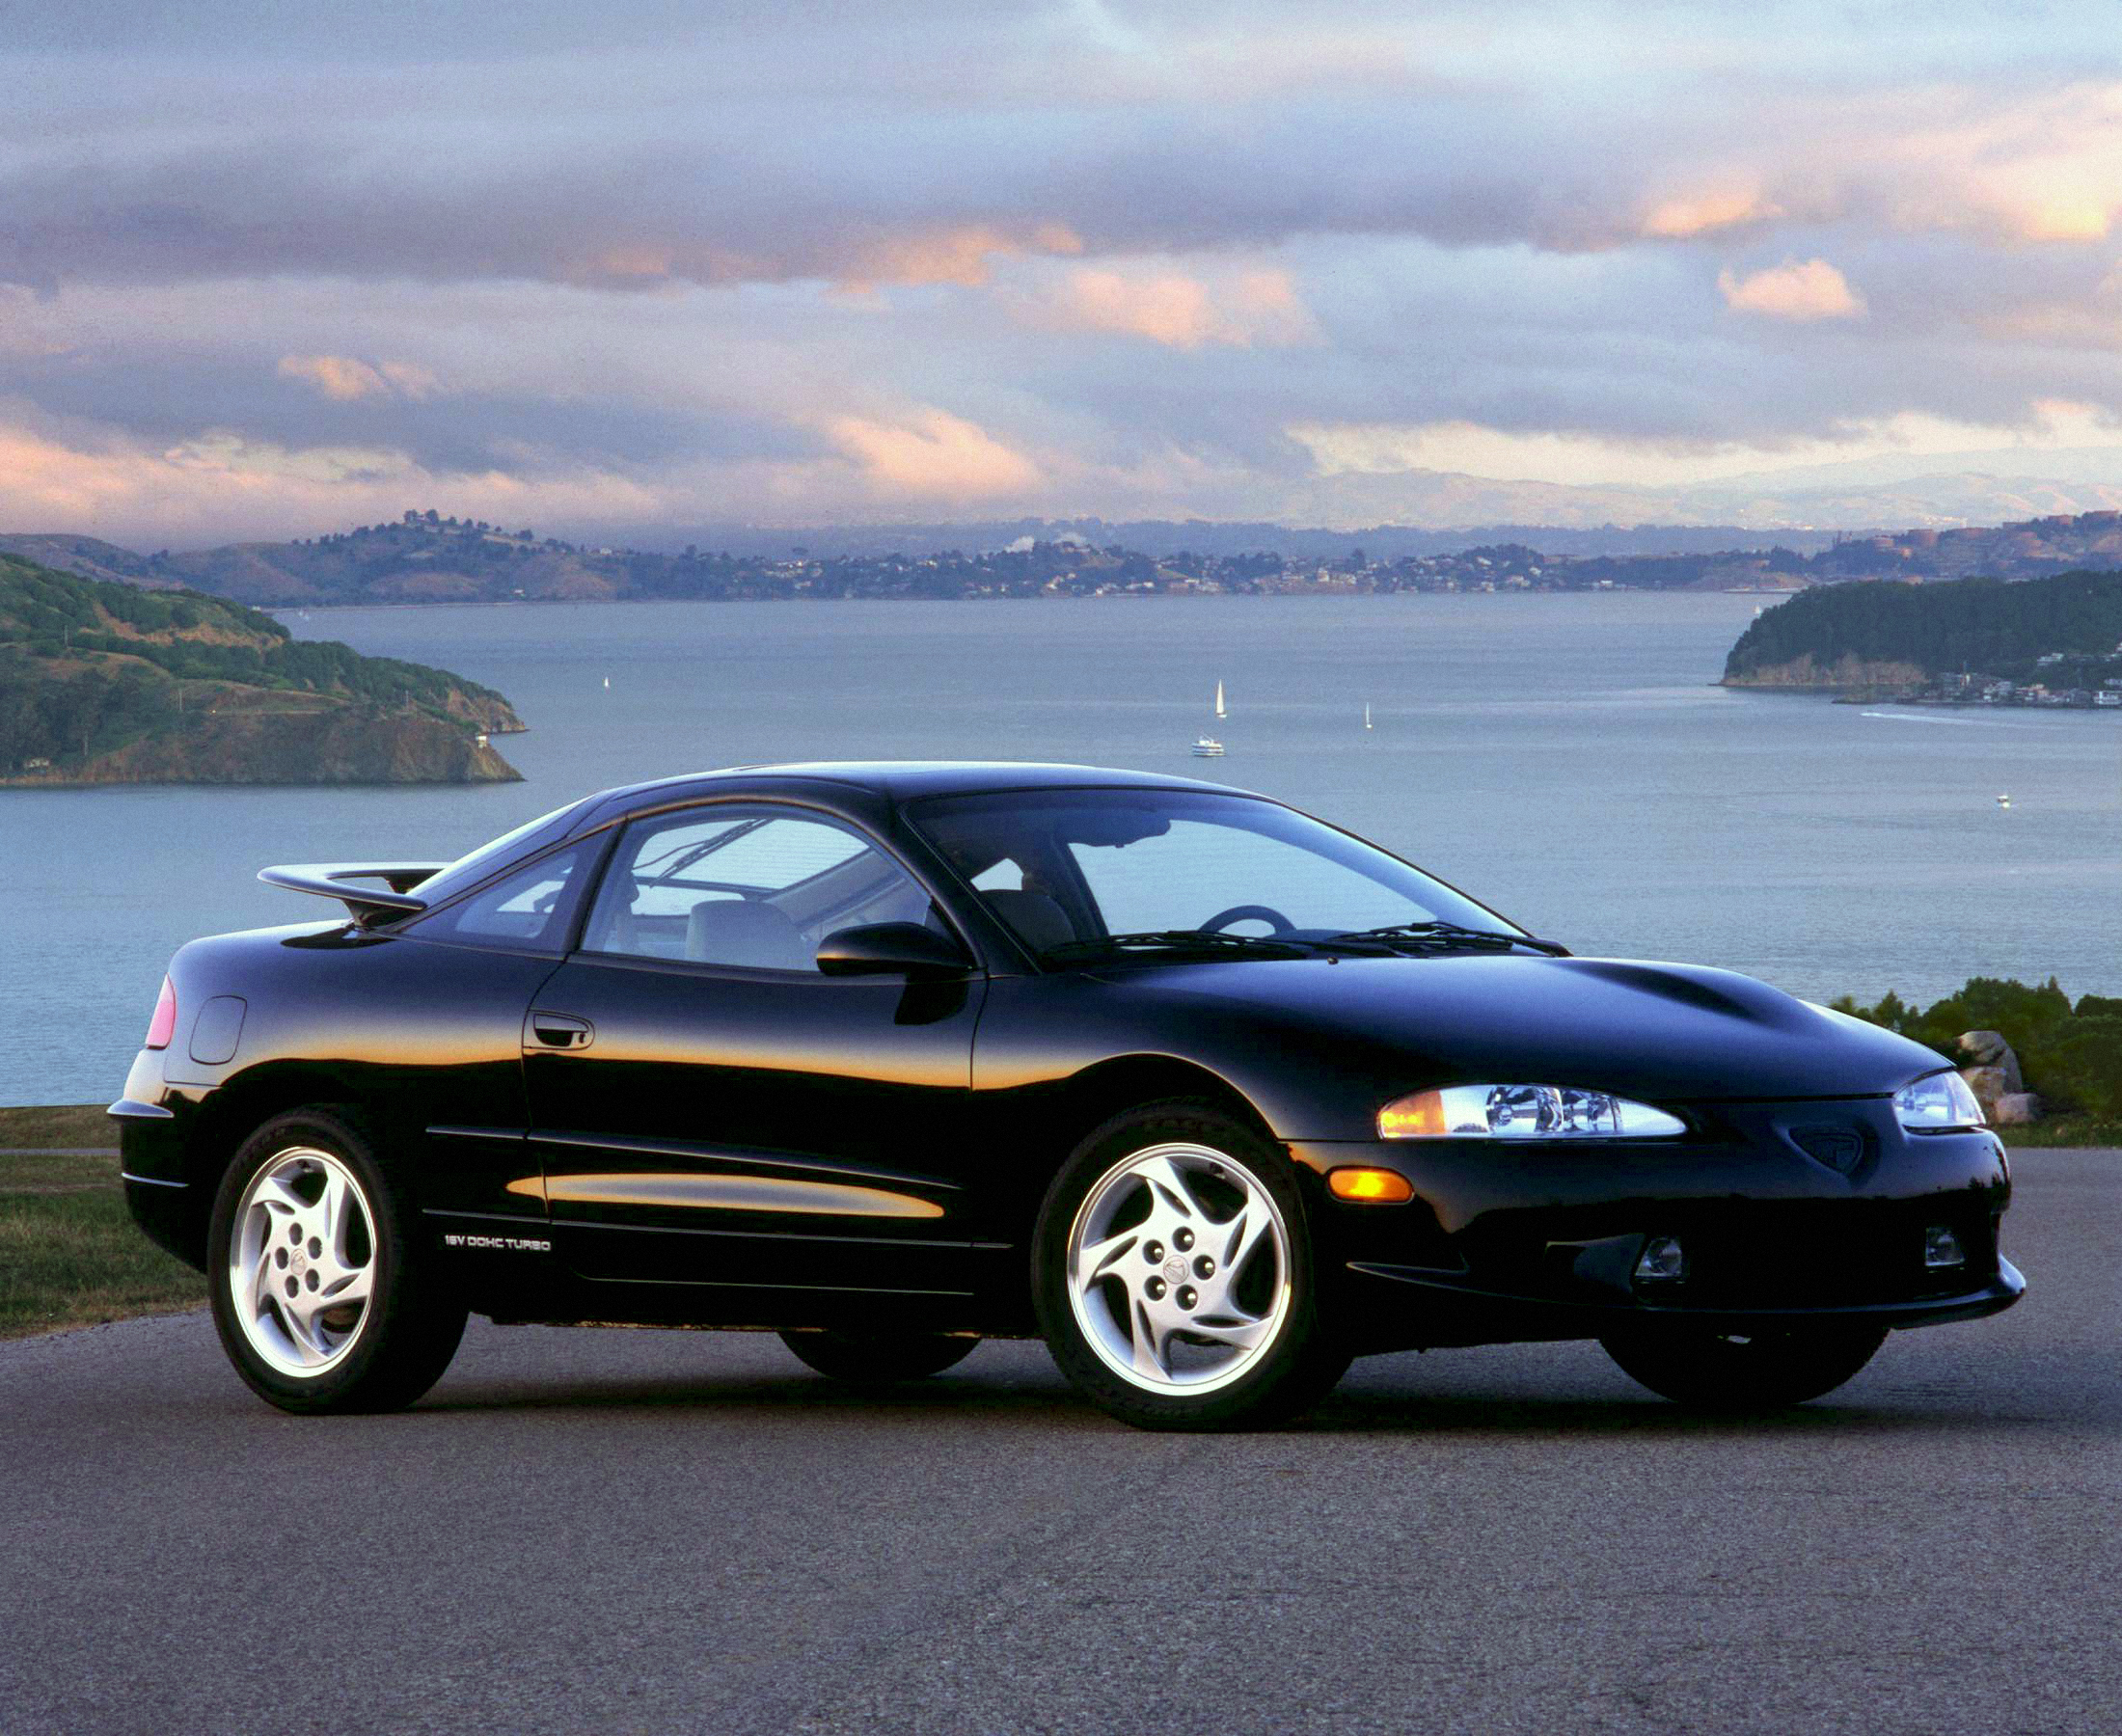 Eagle talon photo - 8